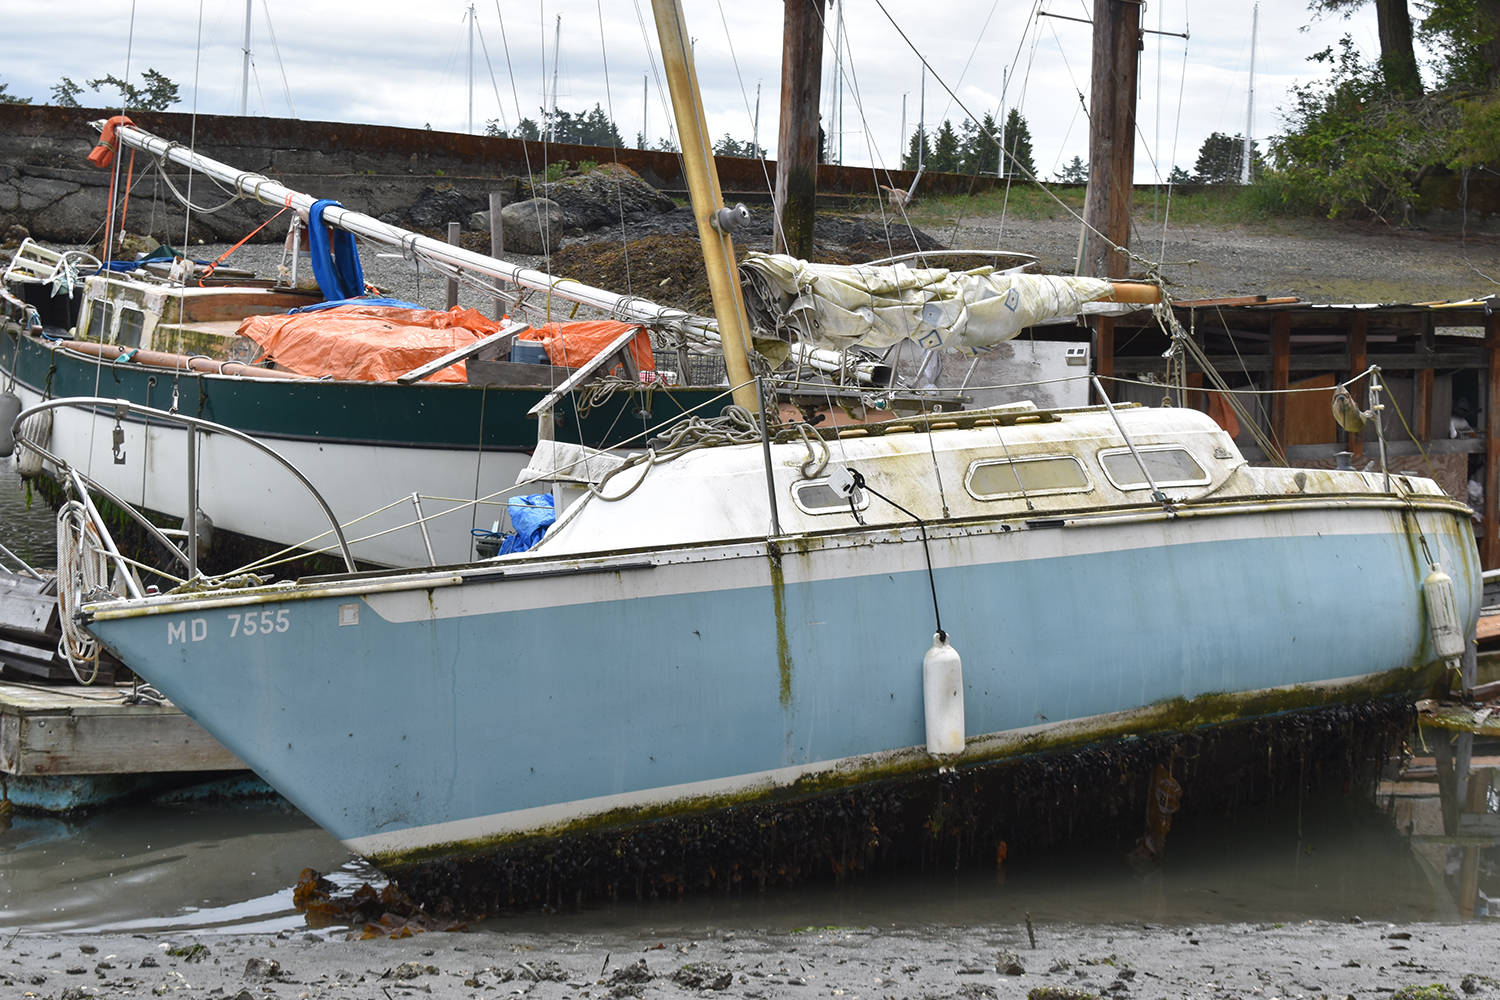 Several boats in violation of a North Saanich order remain moored off Lillian Hoffar Park almost two months month after the municipality had told them to sail off. (Wolf Depner/News Staff)